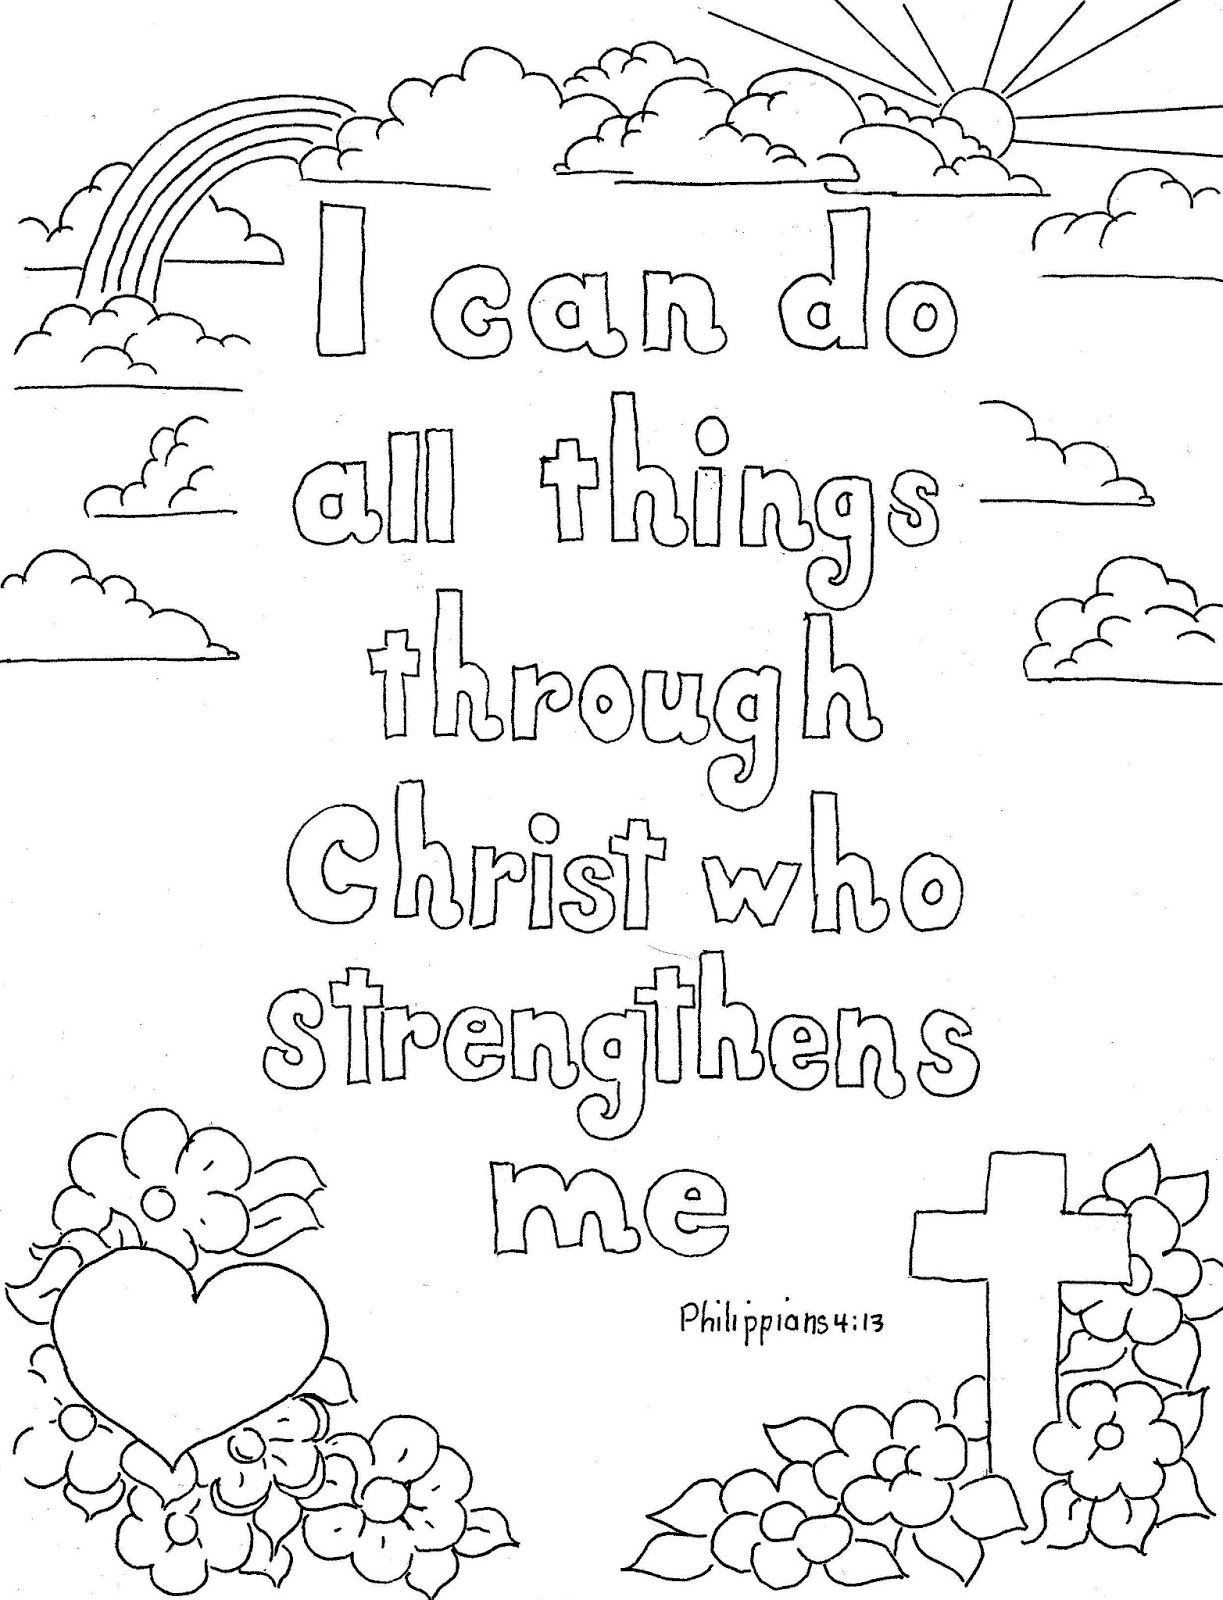 Displaying philippians 4 13 jpg bible verse coloring page jesus coloring pages printable coloring